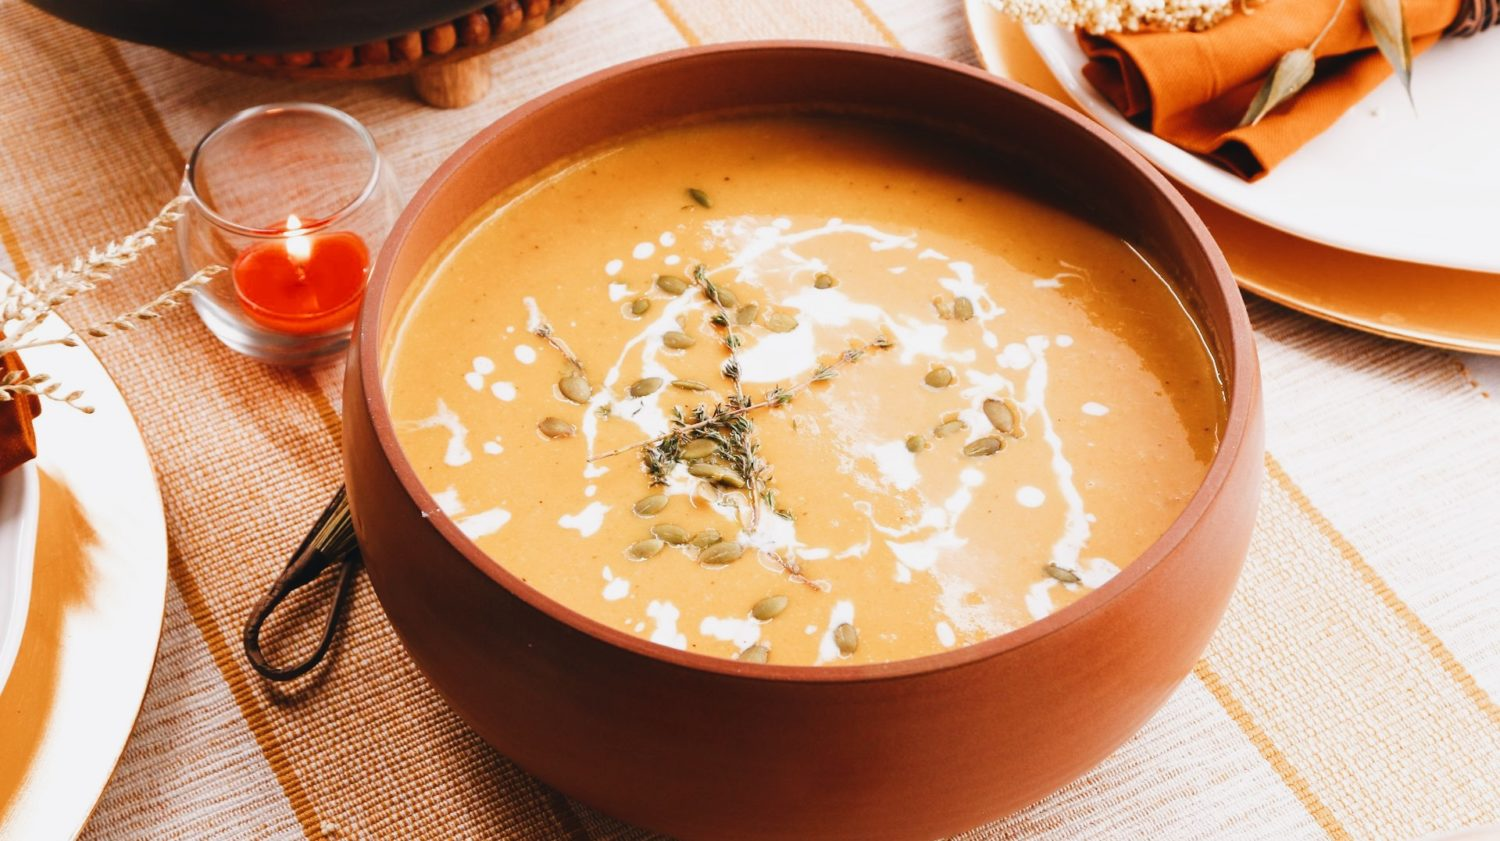 The Best Vegan Butternut Squash Soup Recipe to Make this Thanksgiving